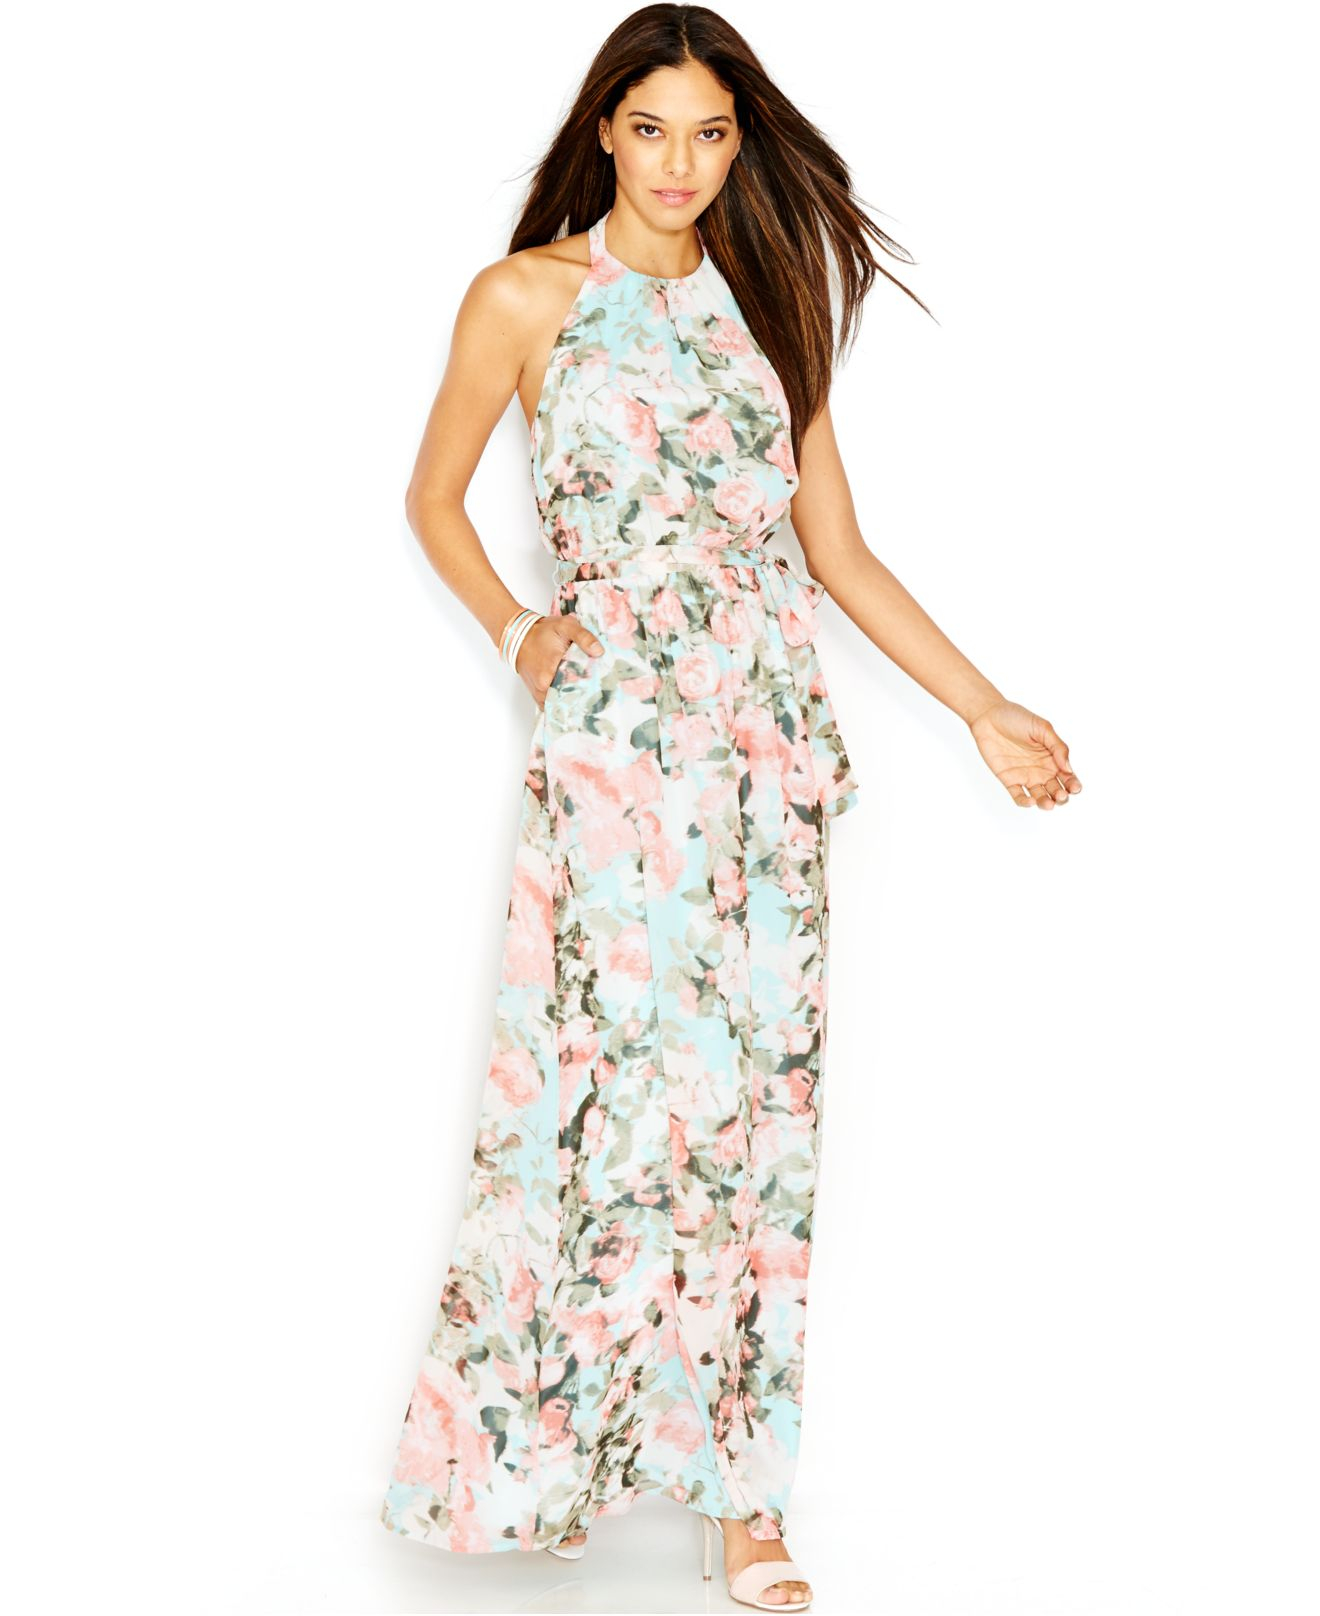 Non Traditional Floral Wedding Dresses: Jessica Simpson Sleeveless Halter-Neck Floral-Print Maxi